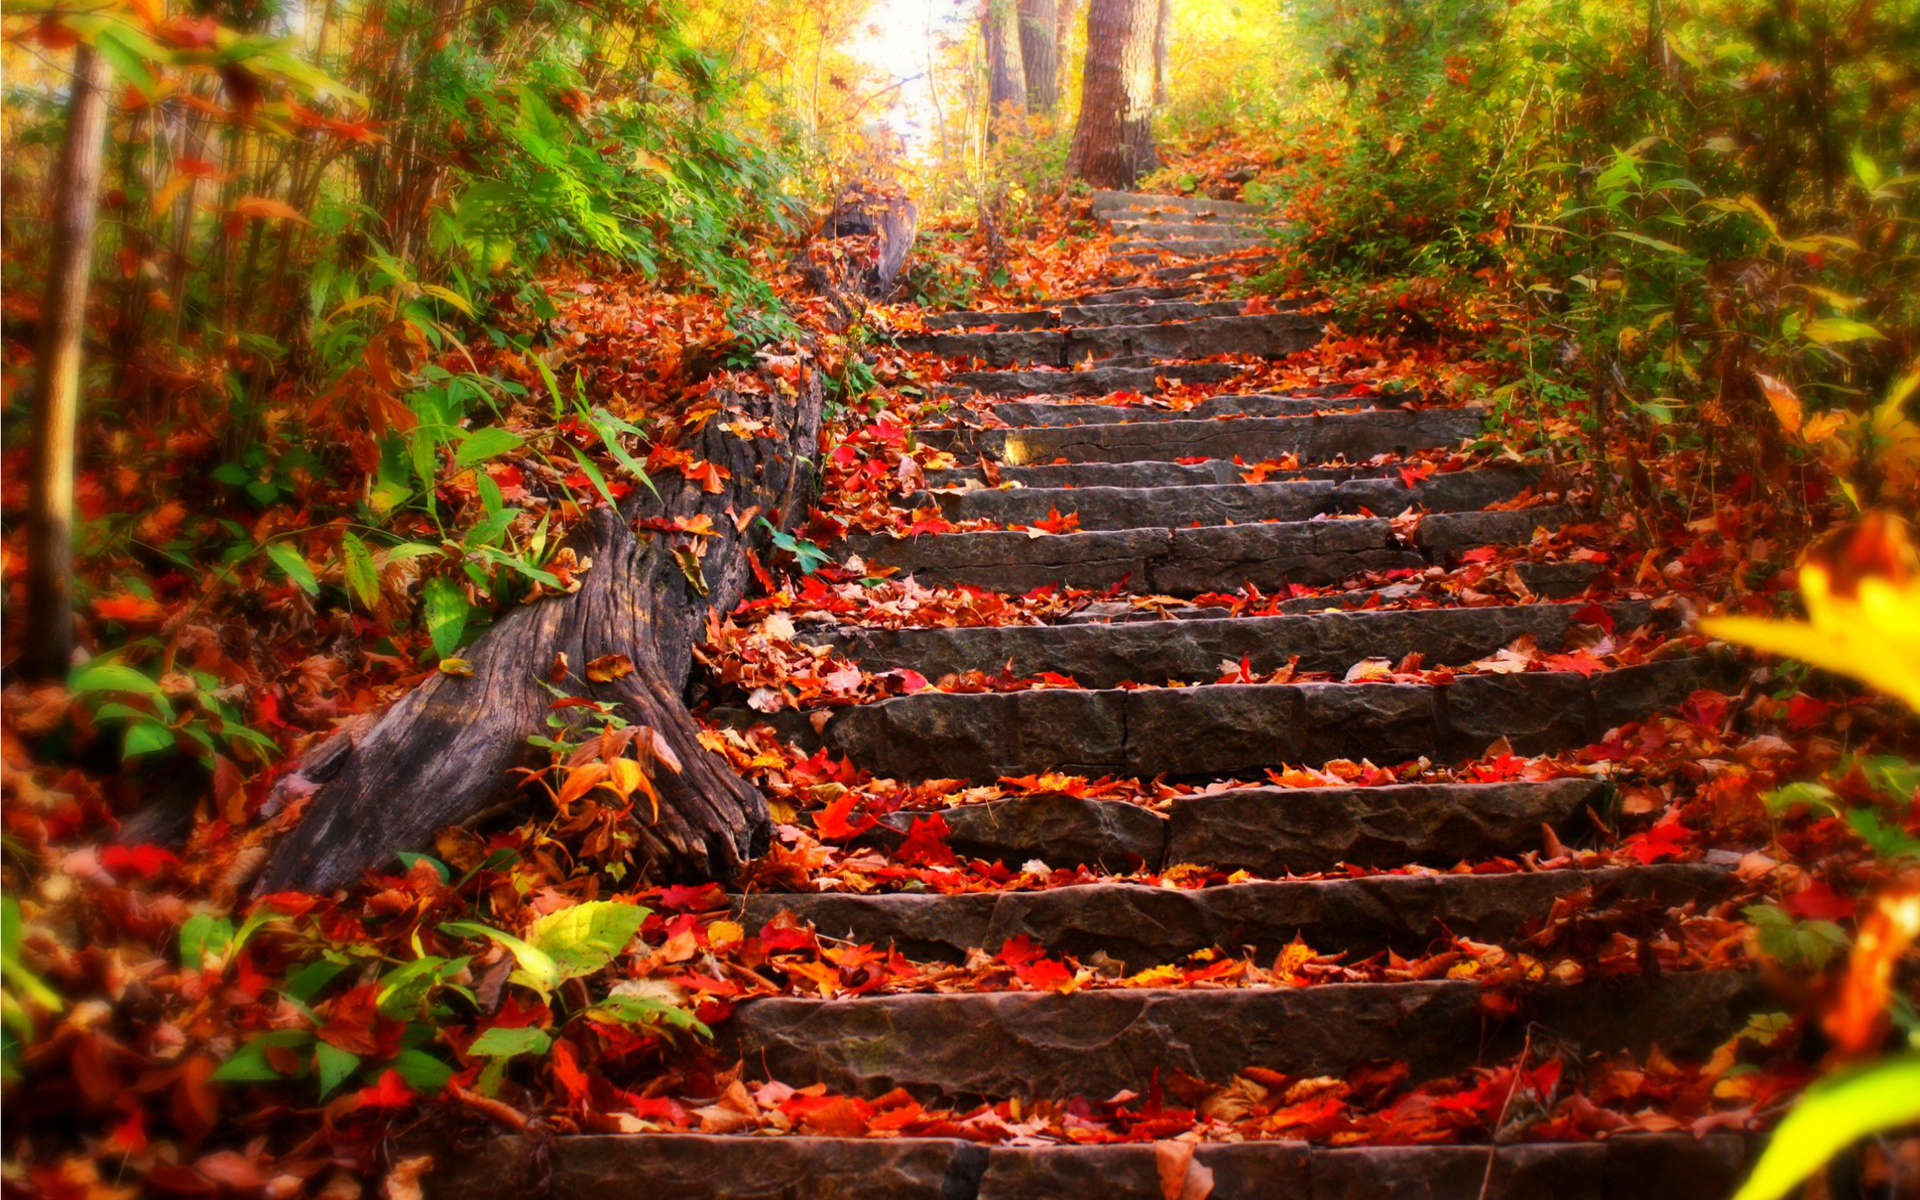 Autumn Leaves at Stone Stairs 1166.52 Kb